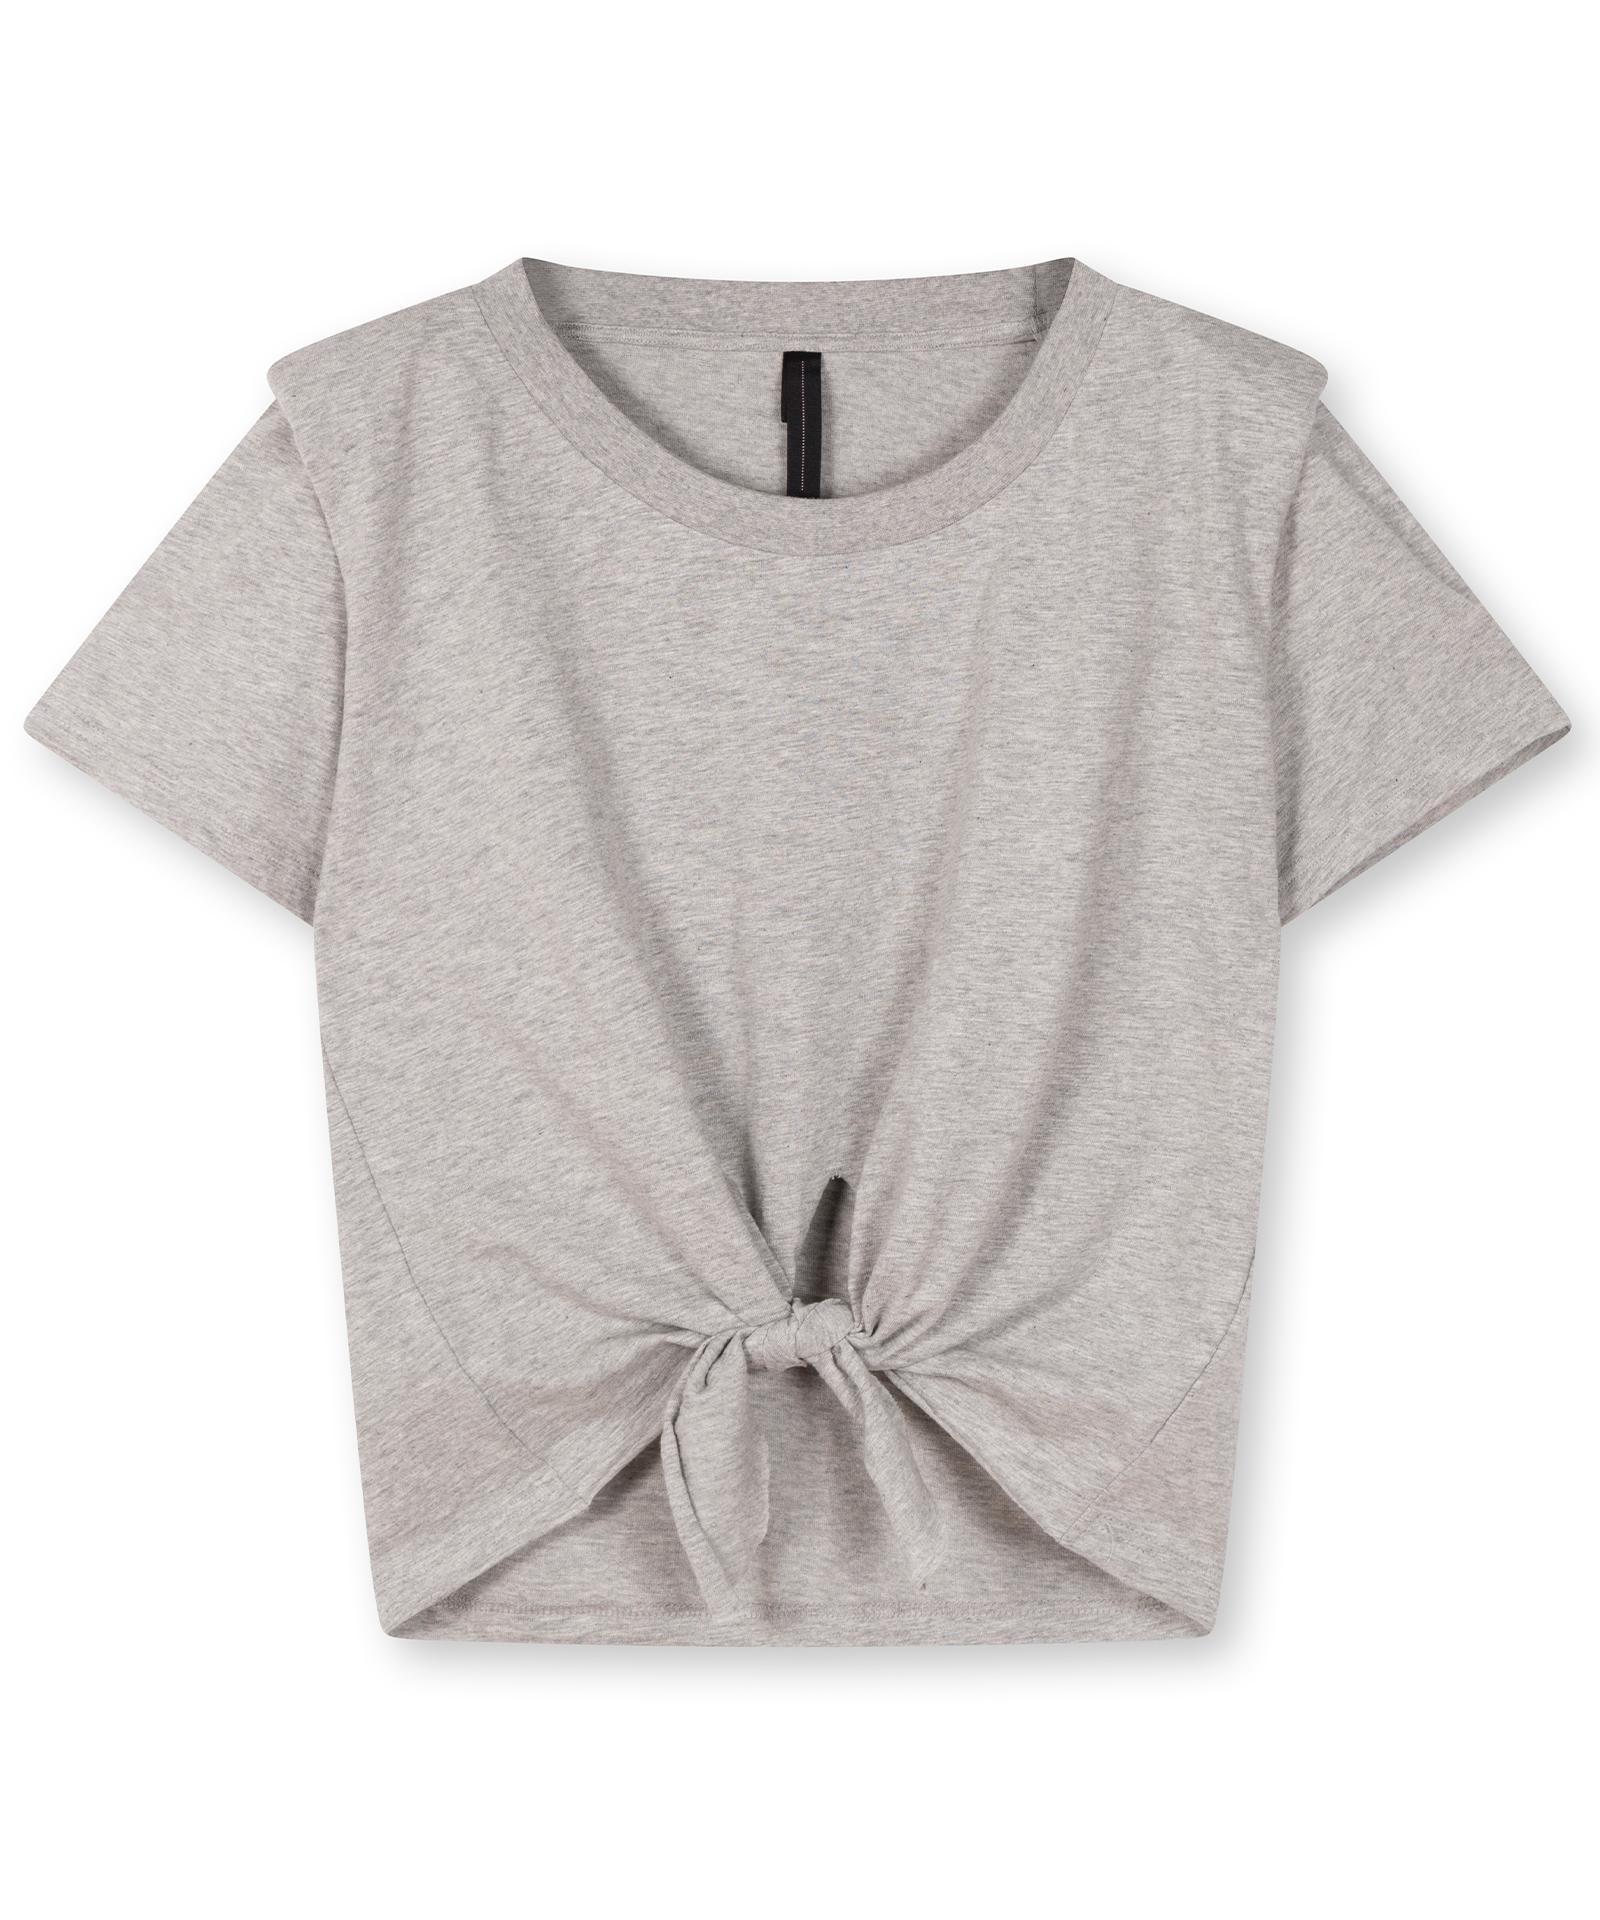 10Days Padded knotted tee light grey melee 20-740-1203